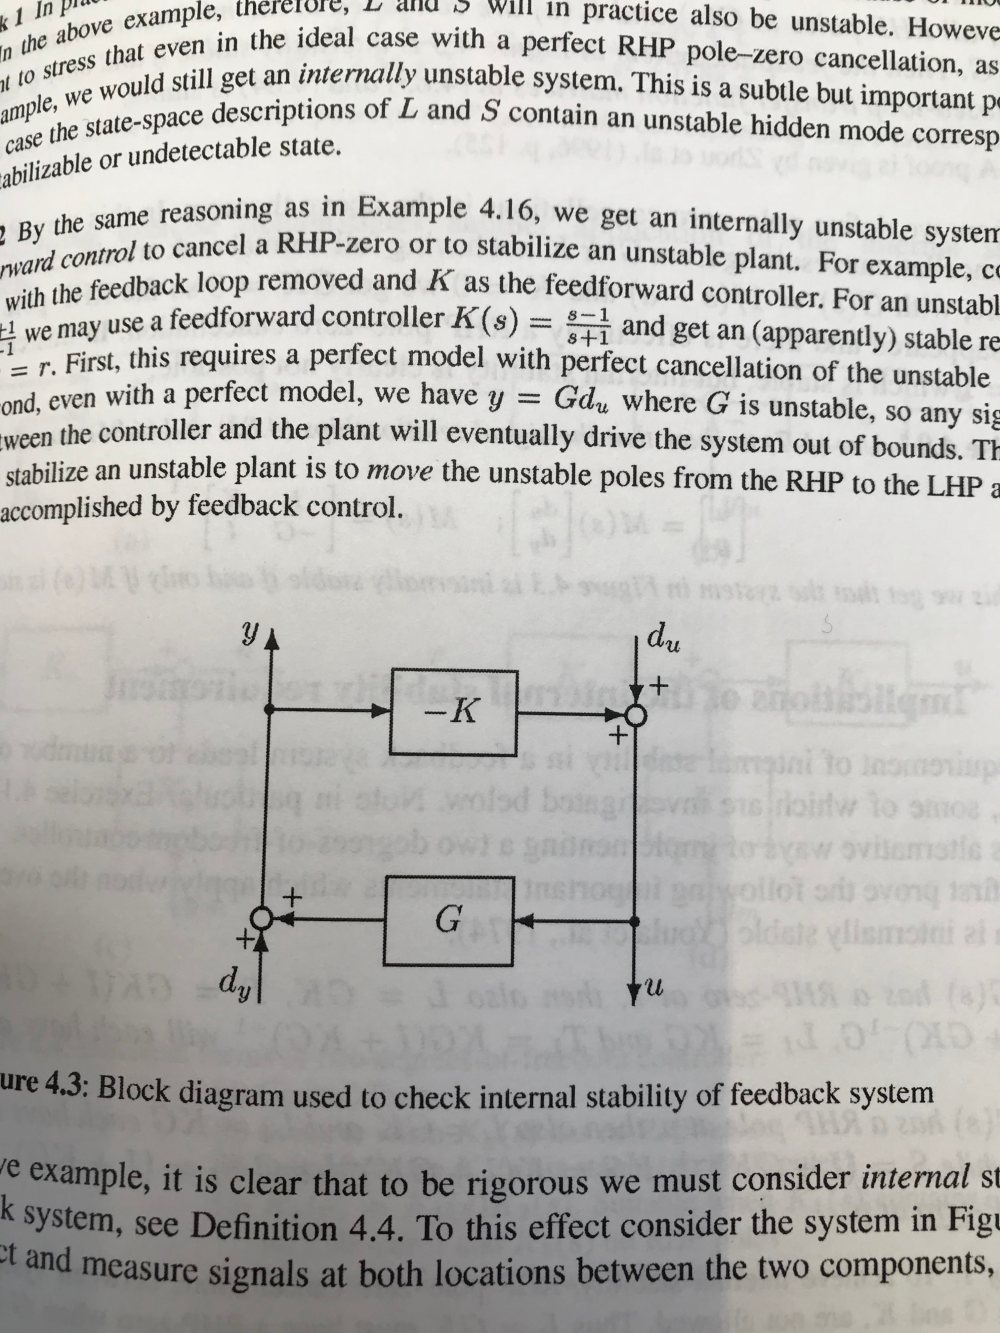 medium resolution of the block diagram is as shown in the picture the book says that u i kg 1 du k i gk 1 dy how is this possible from my understanding shouldn t u